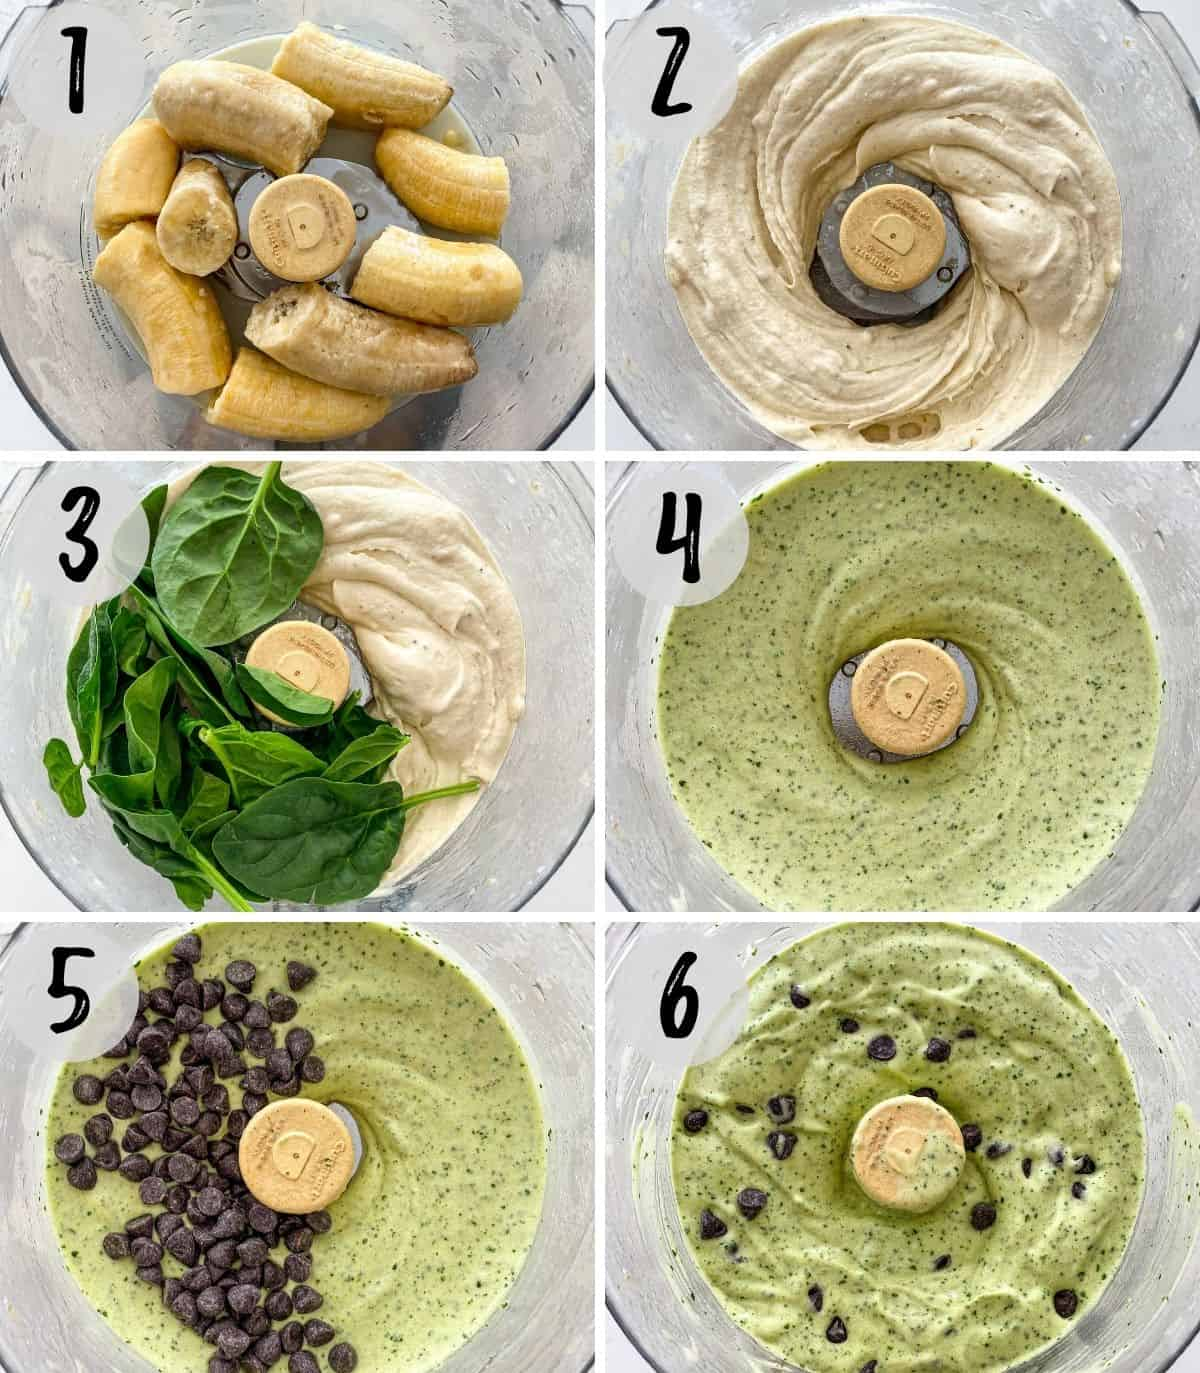 Collage of images of bananas and flavorings being blended in food processor to make mint chip nice cream.